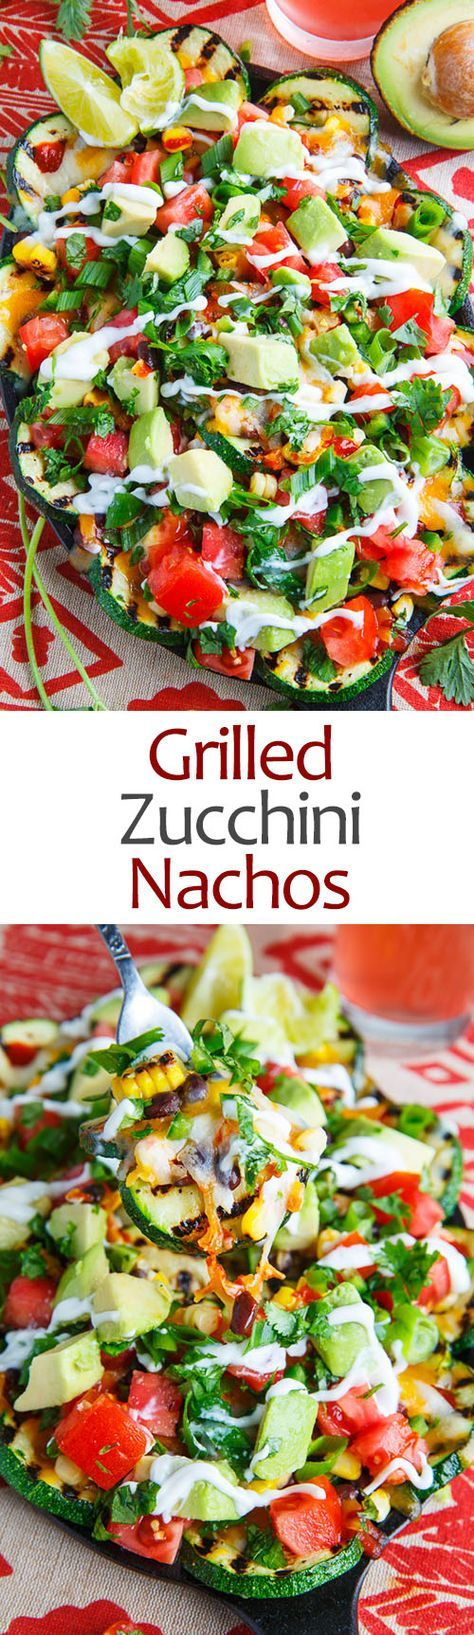 ... Grilled Zucchini on Pinterest | Zucchini, Grilling and Zucchini Rolls